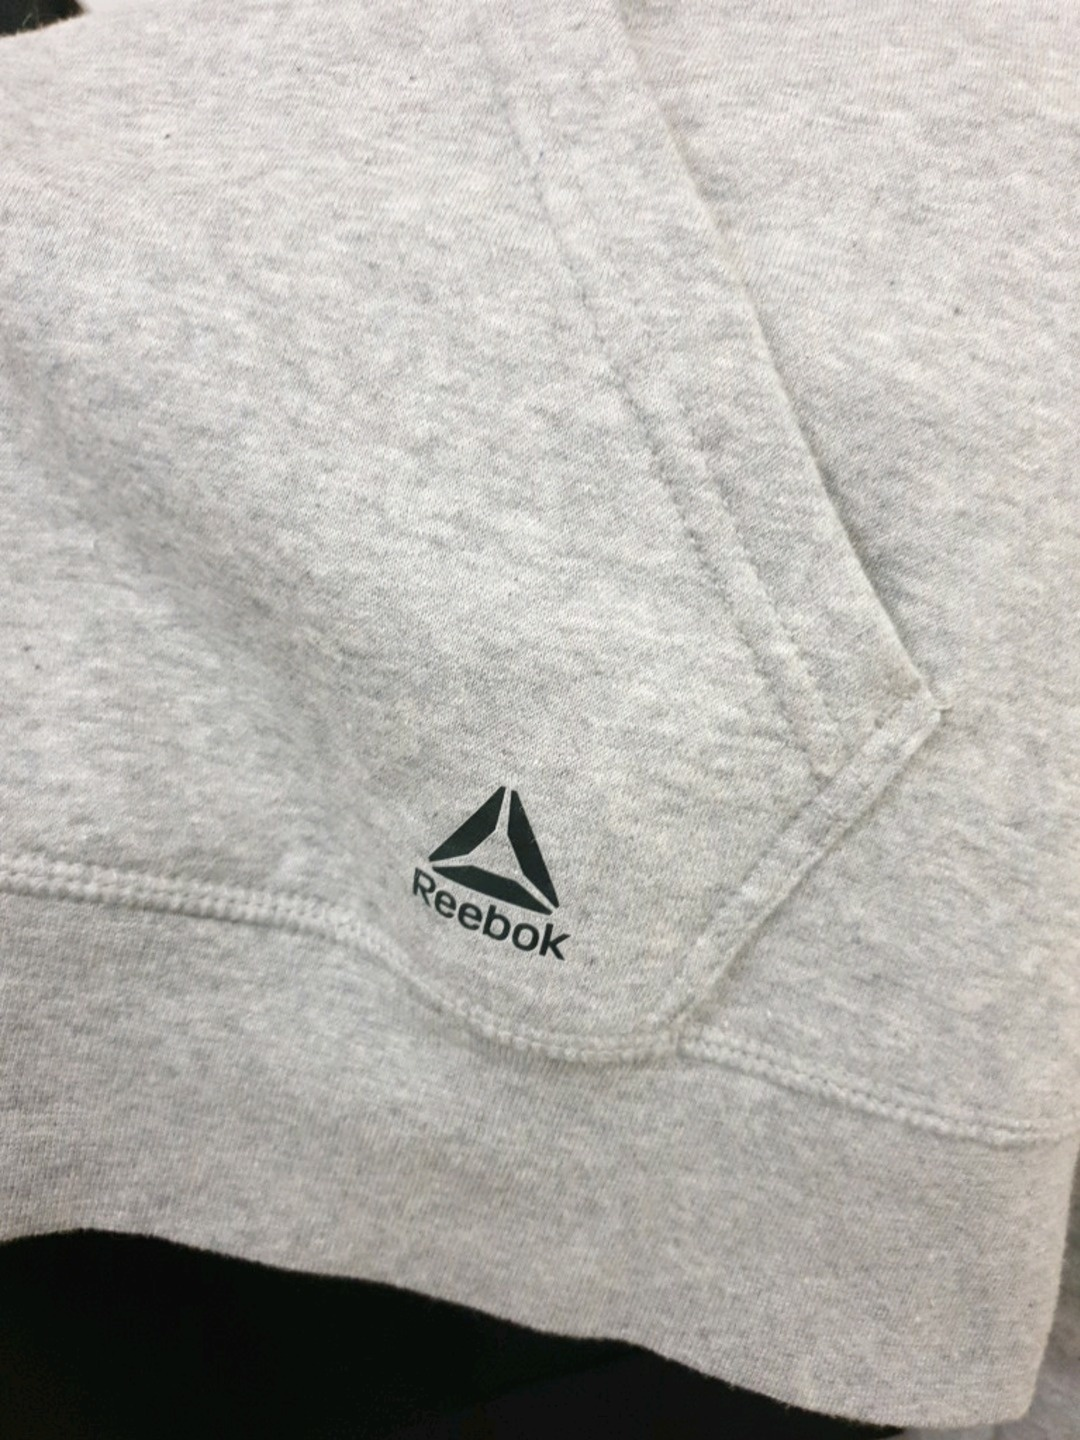 Women's hoodies & sweatshirts - REEBOK photo 3